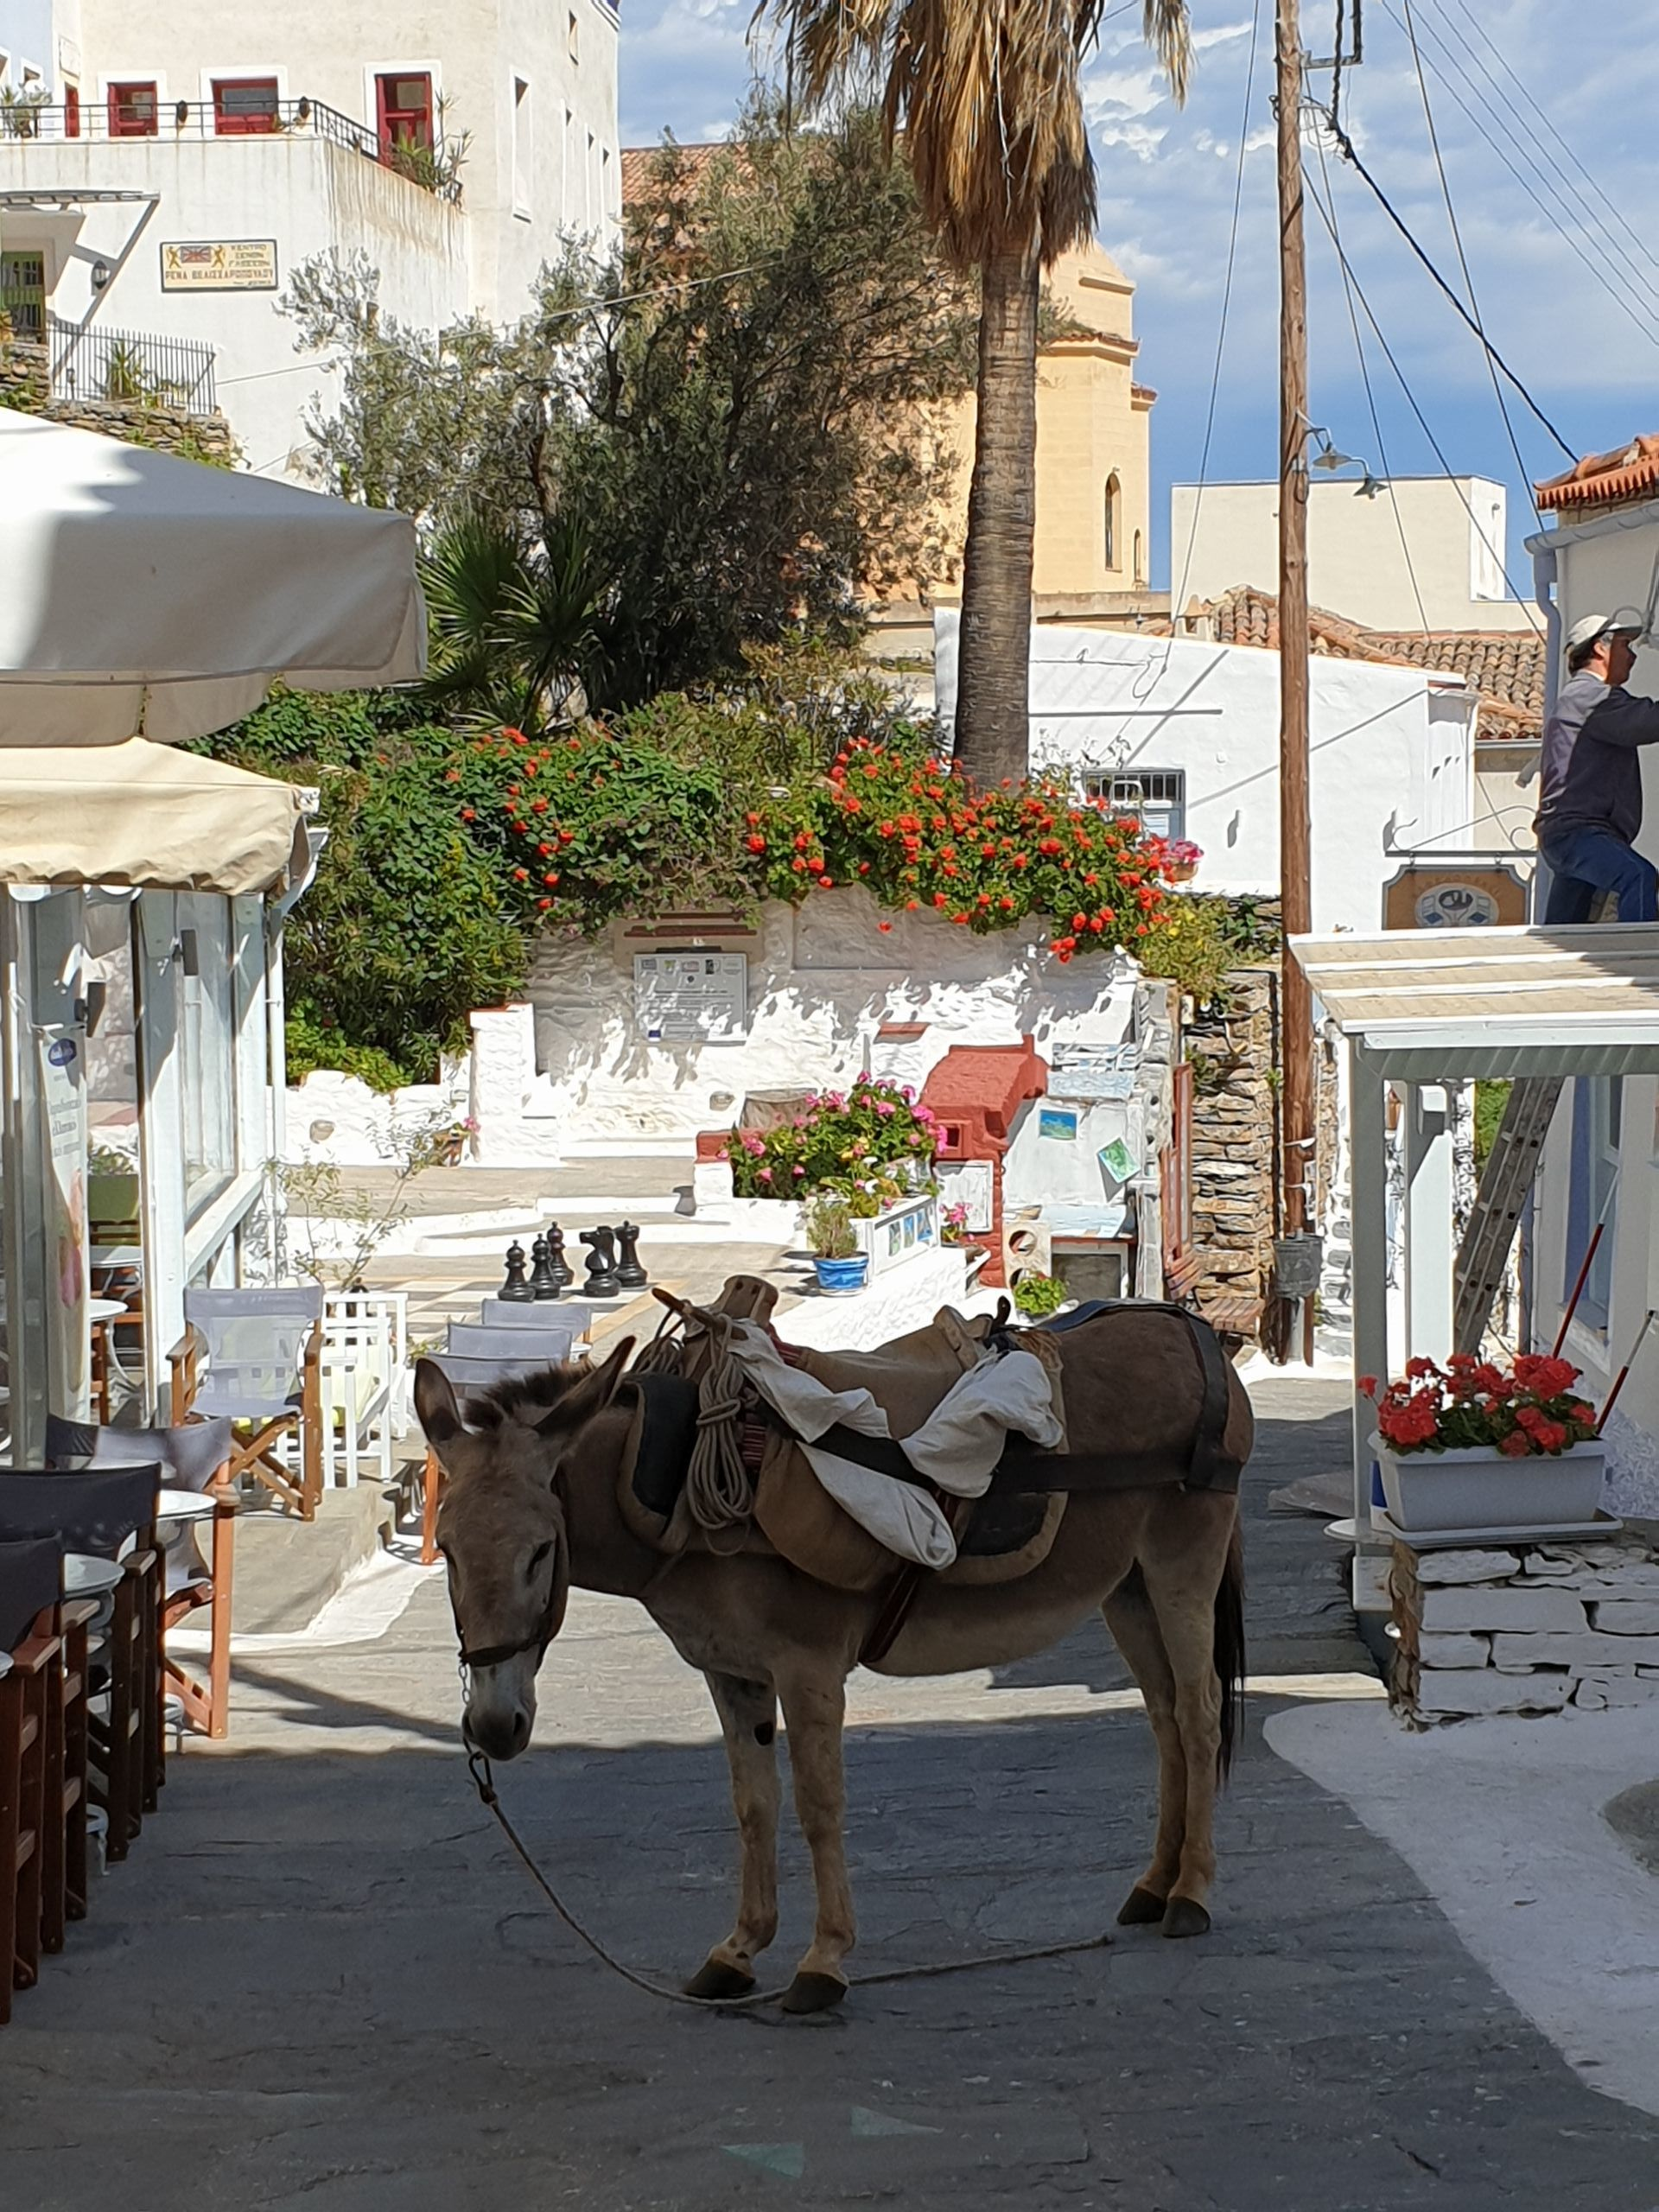 A donkey waiting for work in the hilltop town of Ioulis, Tzia.